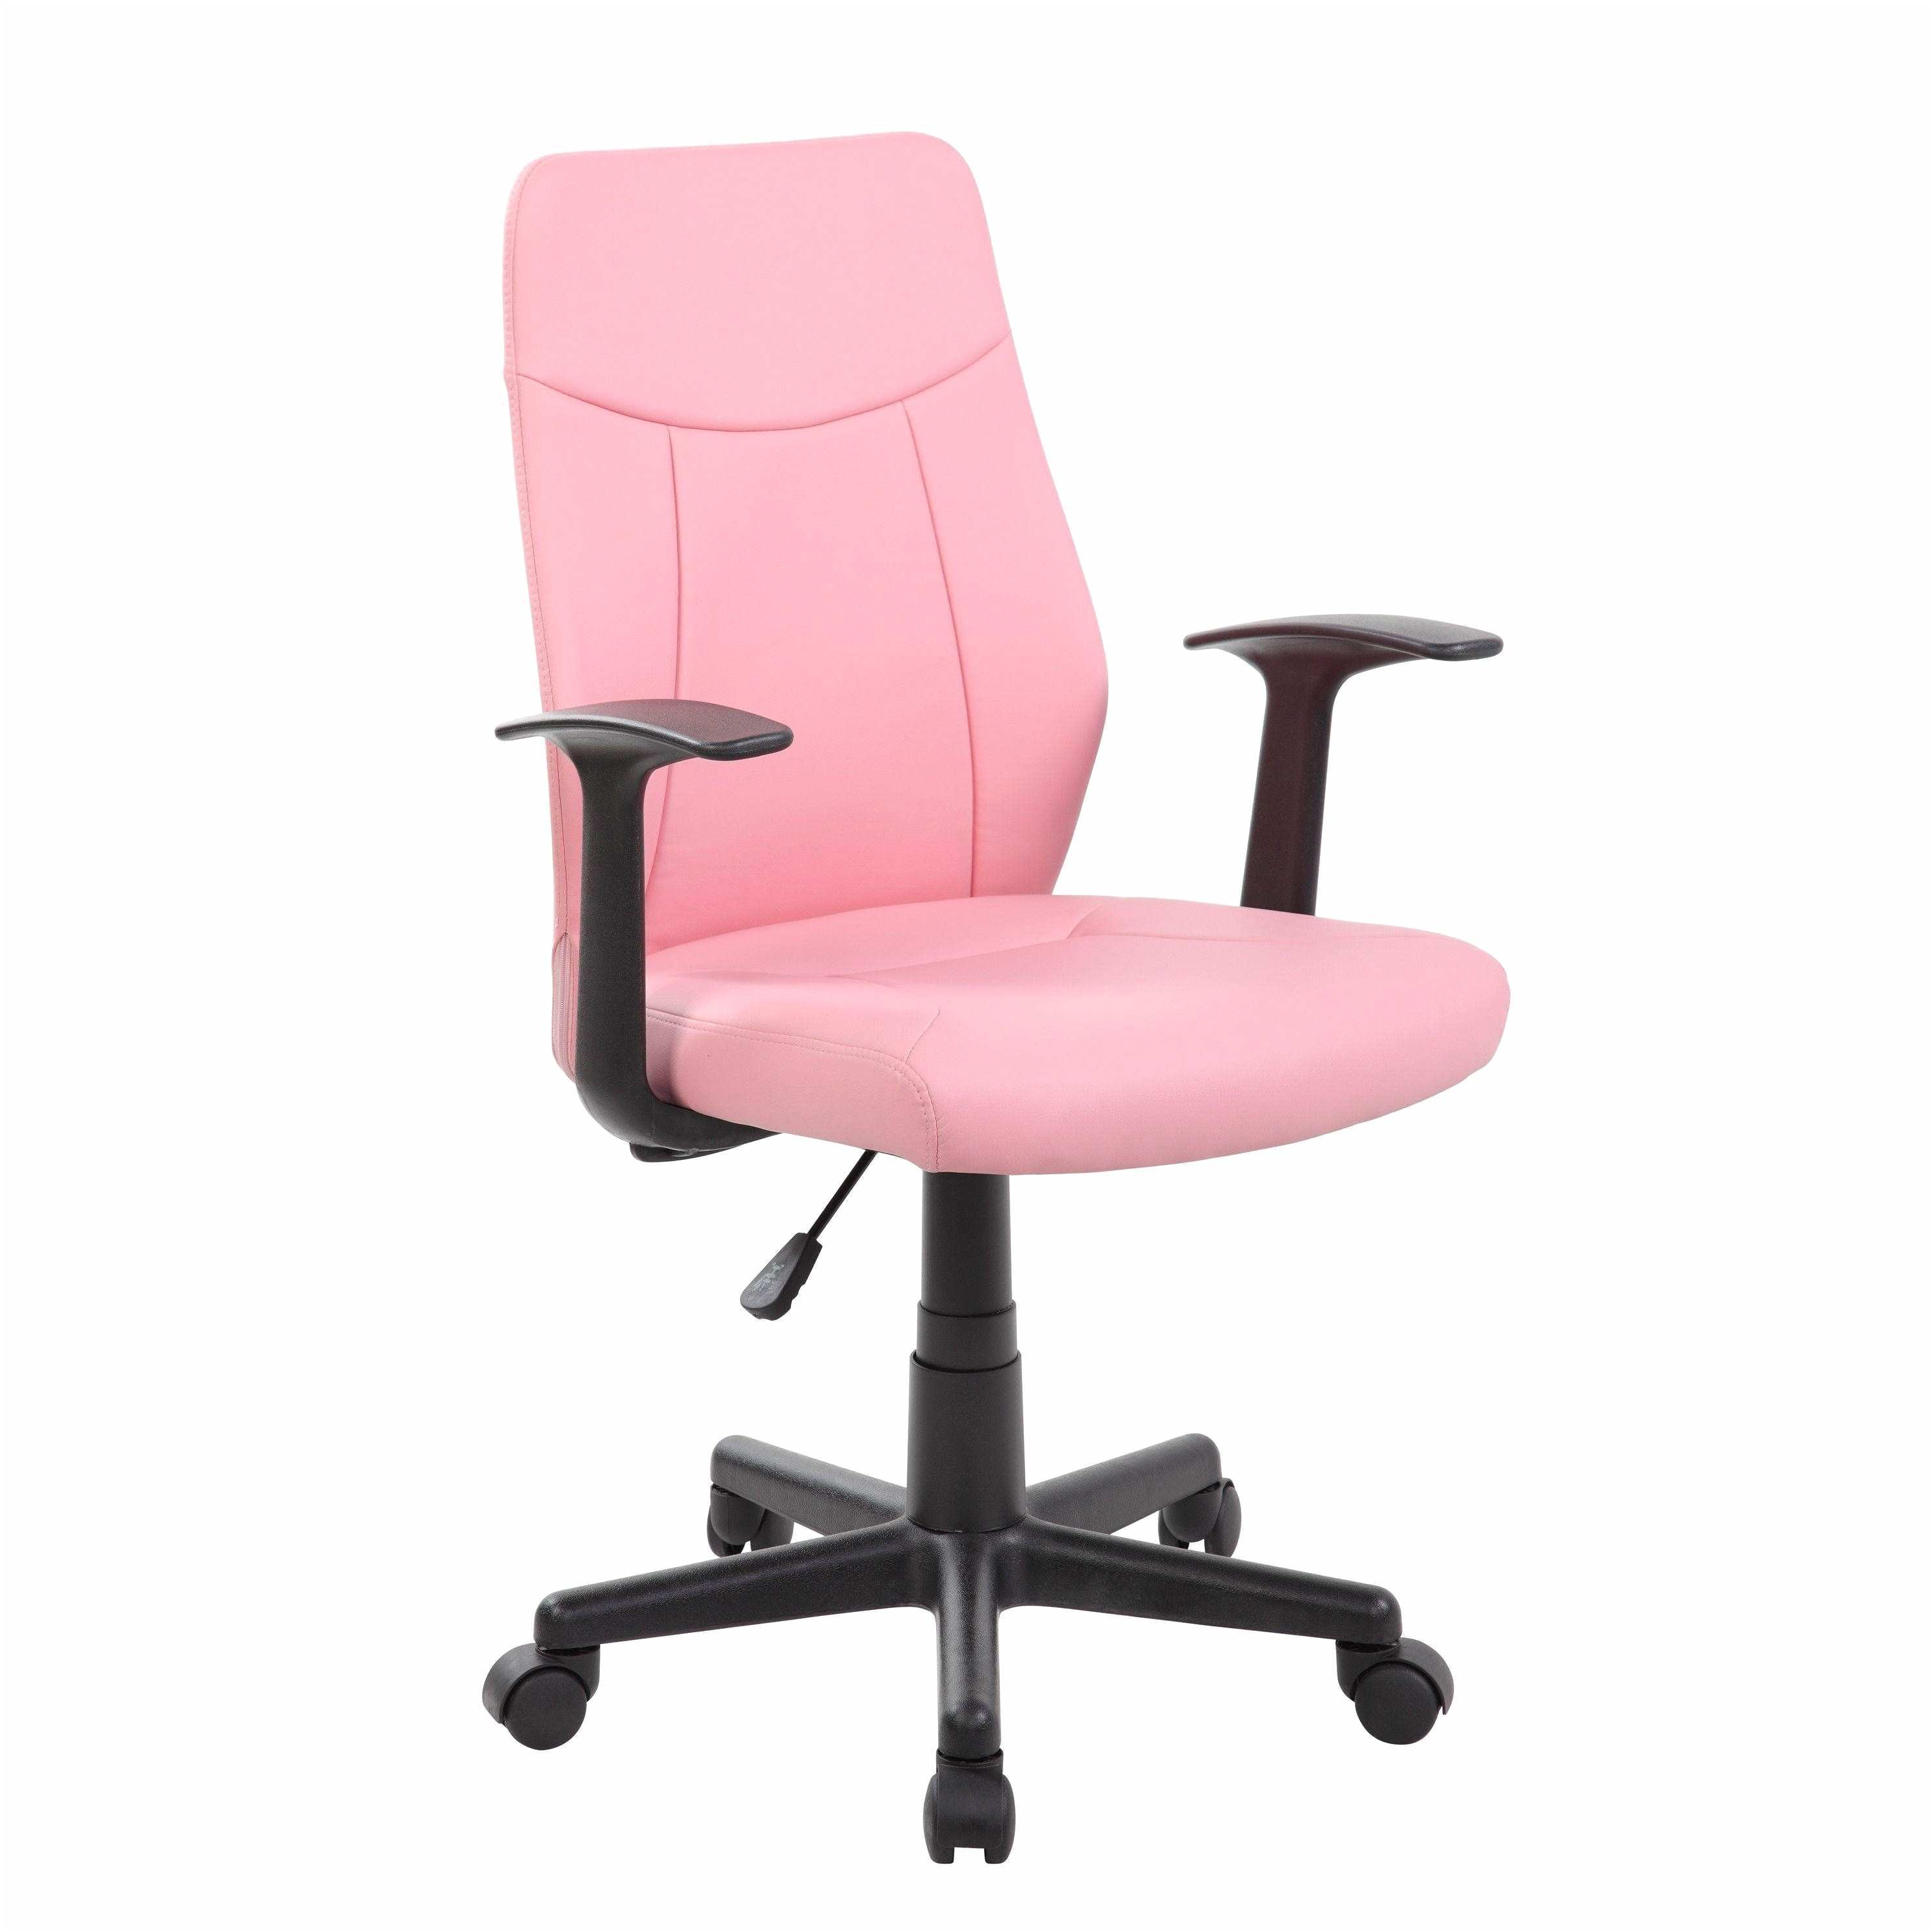 game chair walmart luxury gaming sessel luxus gaming chair 0d